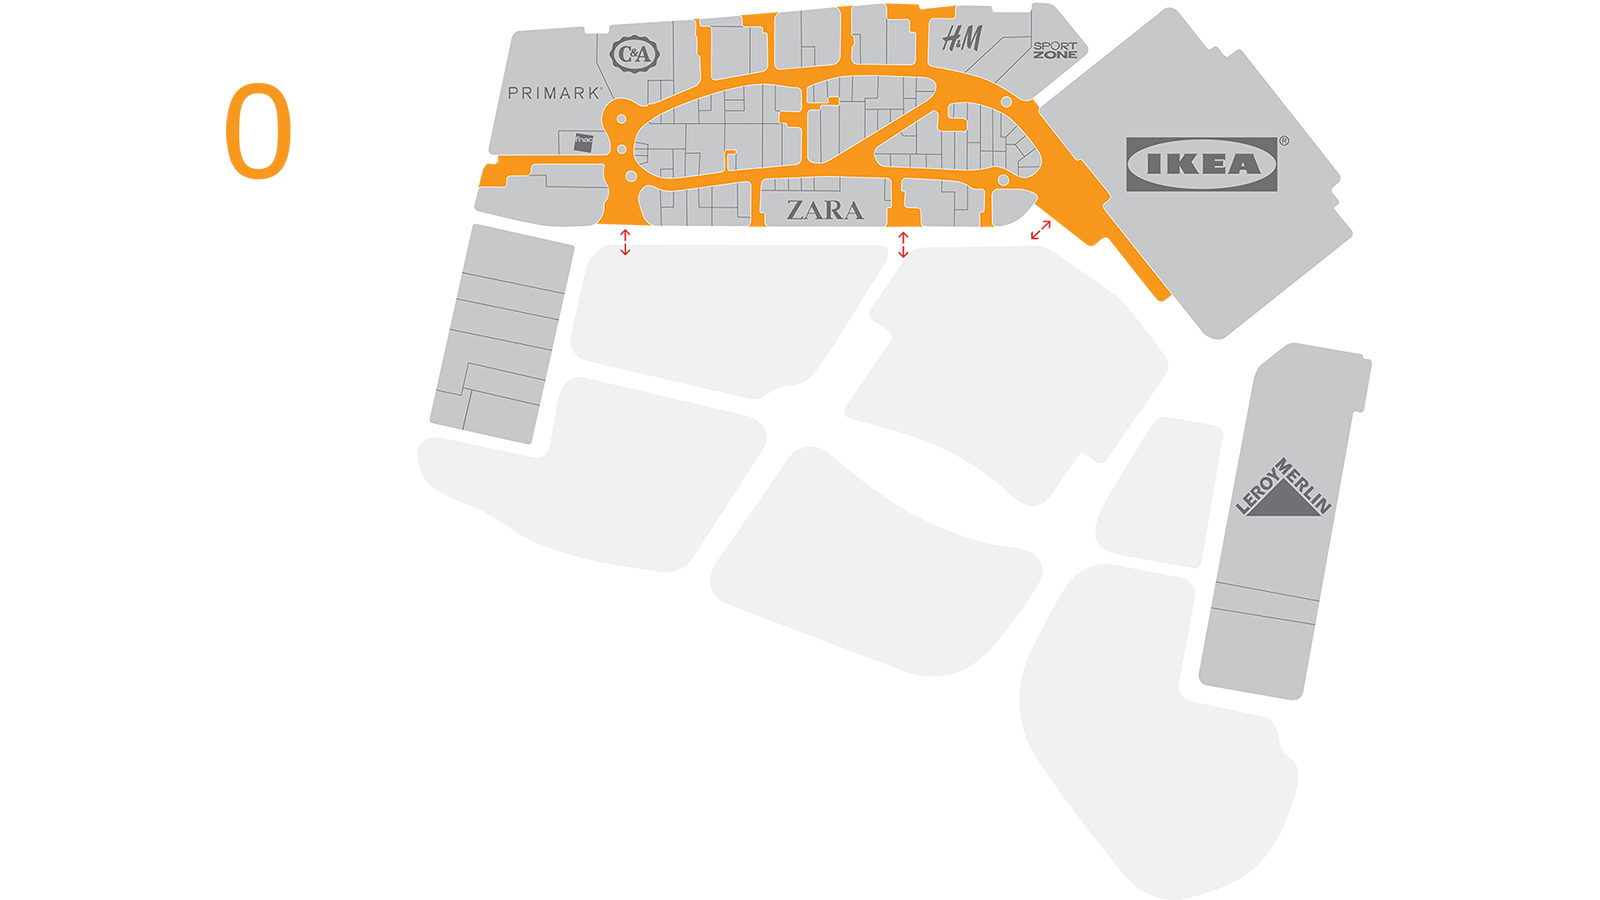 RÍO Shopping, Valladolid,centre plan, ground floor